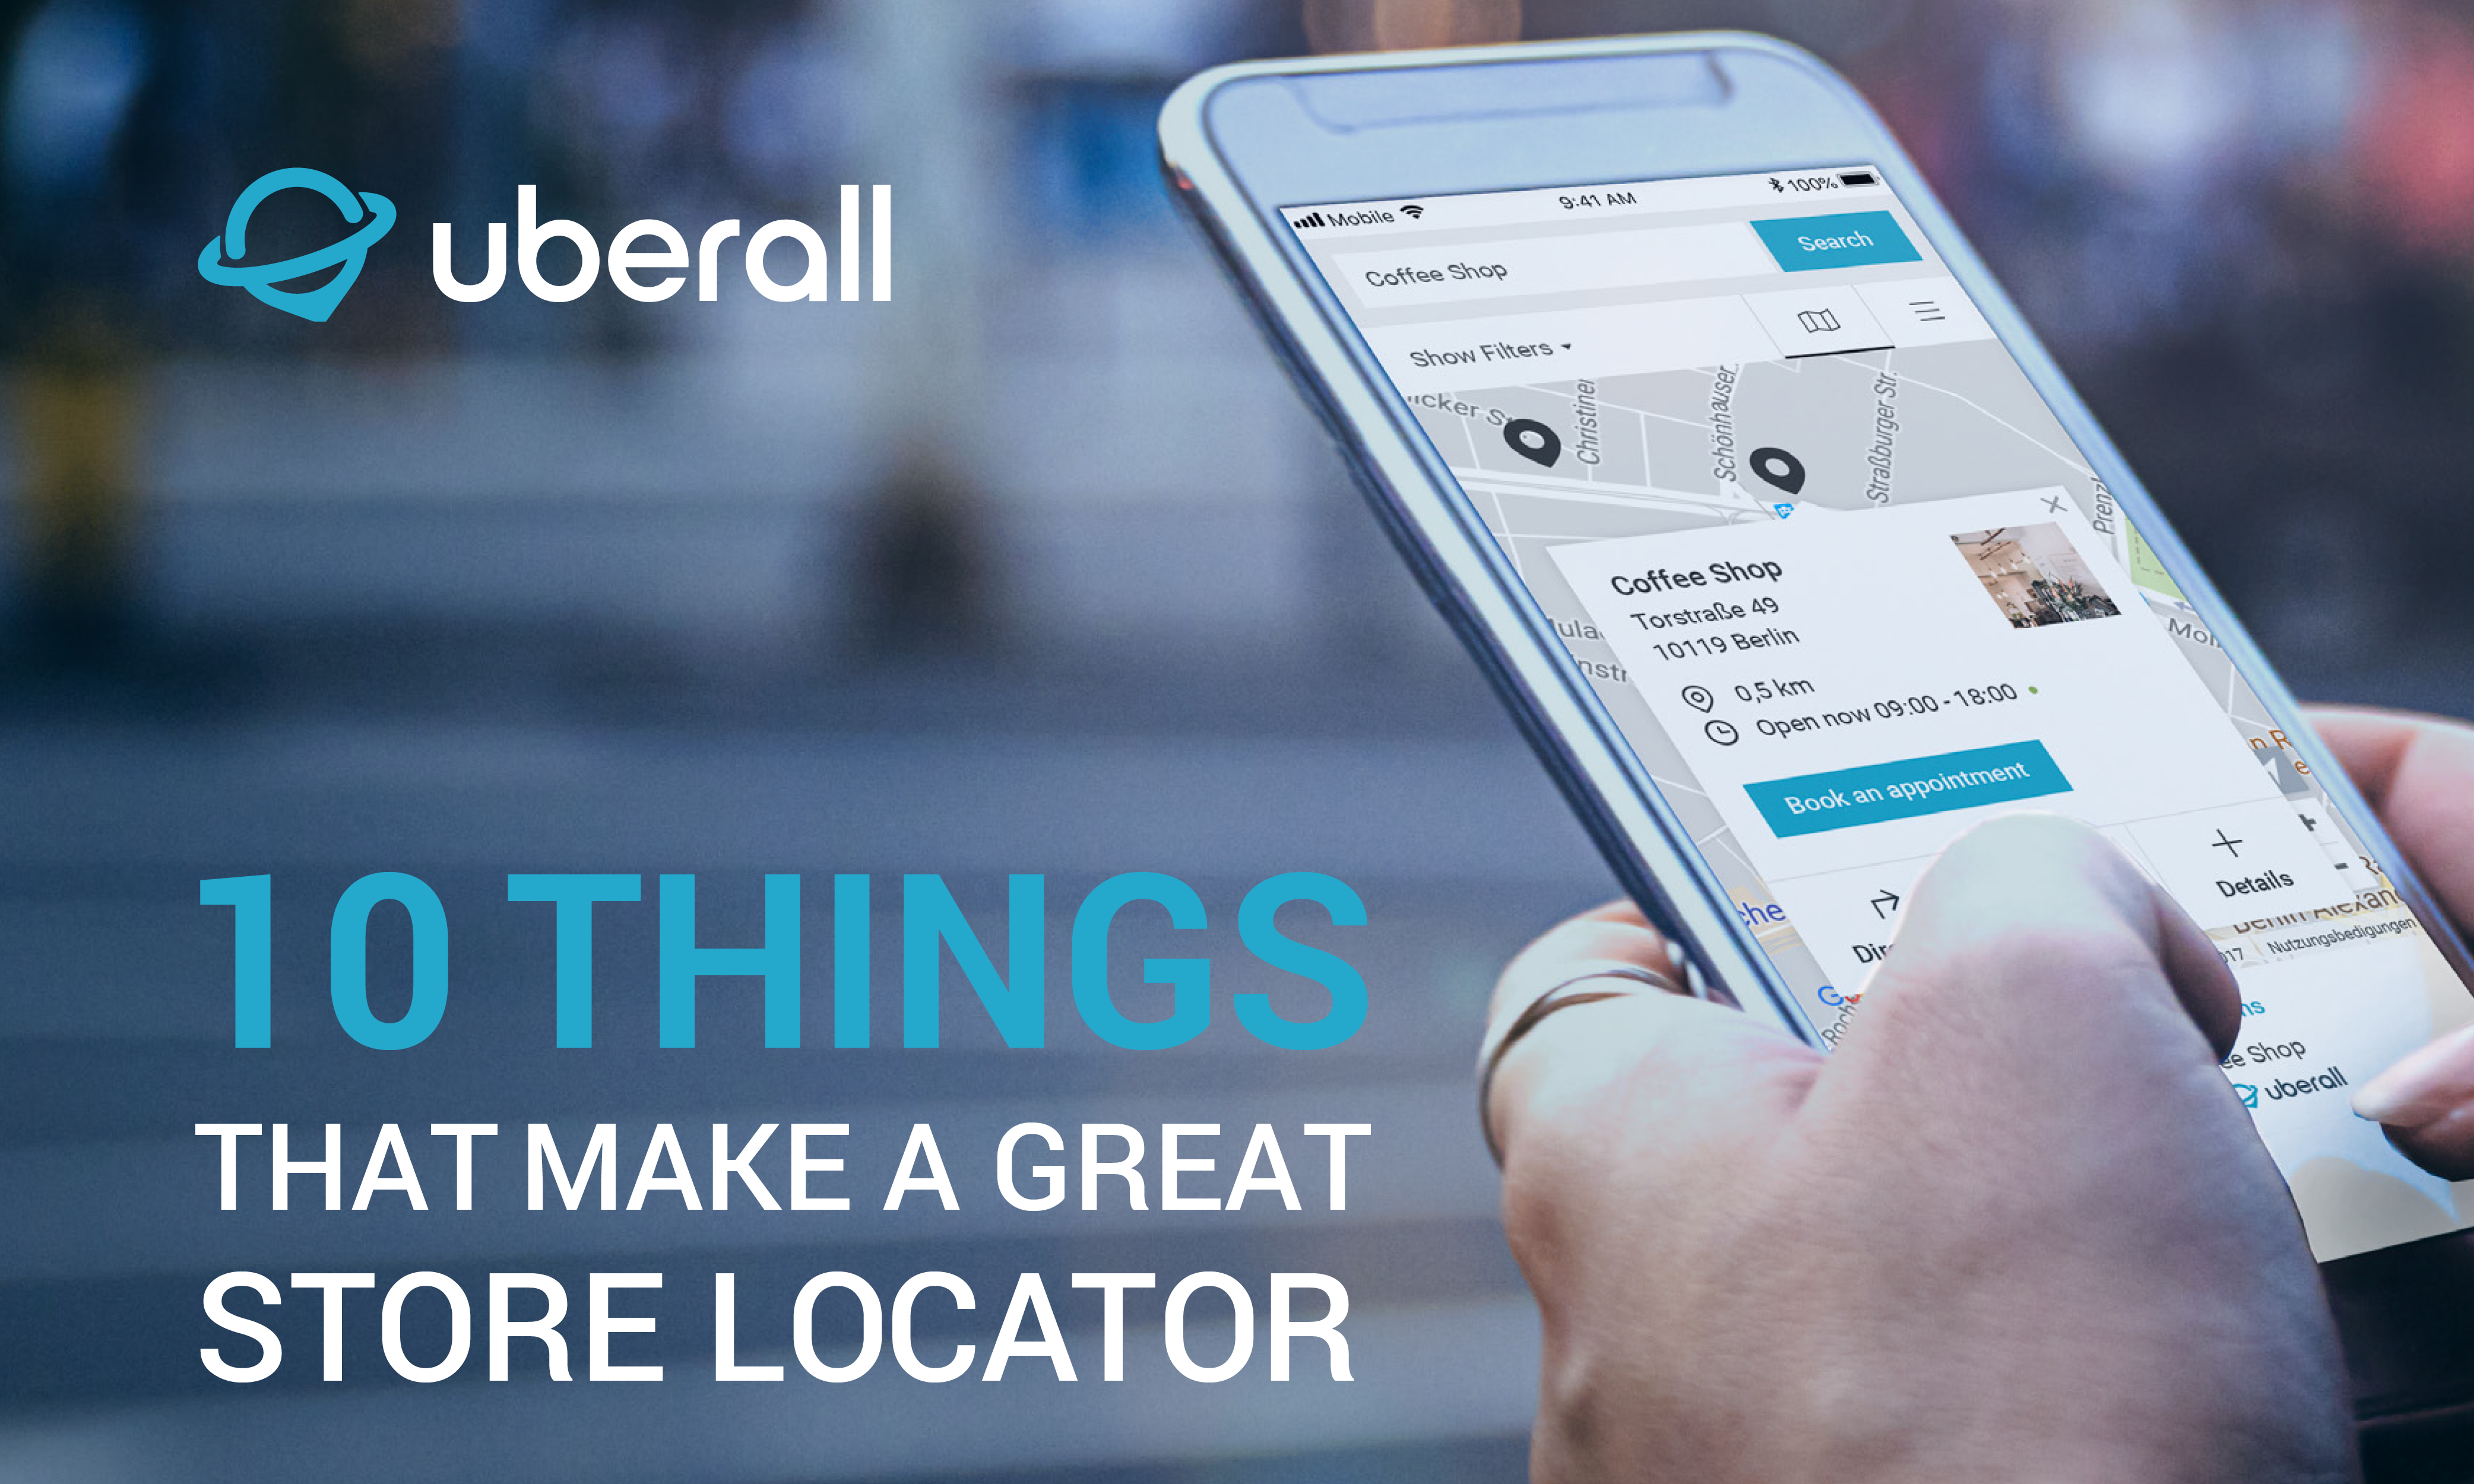 eBook: 10 Things That Make A Great Store Locator